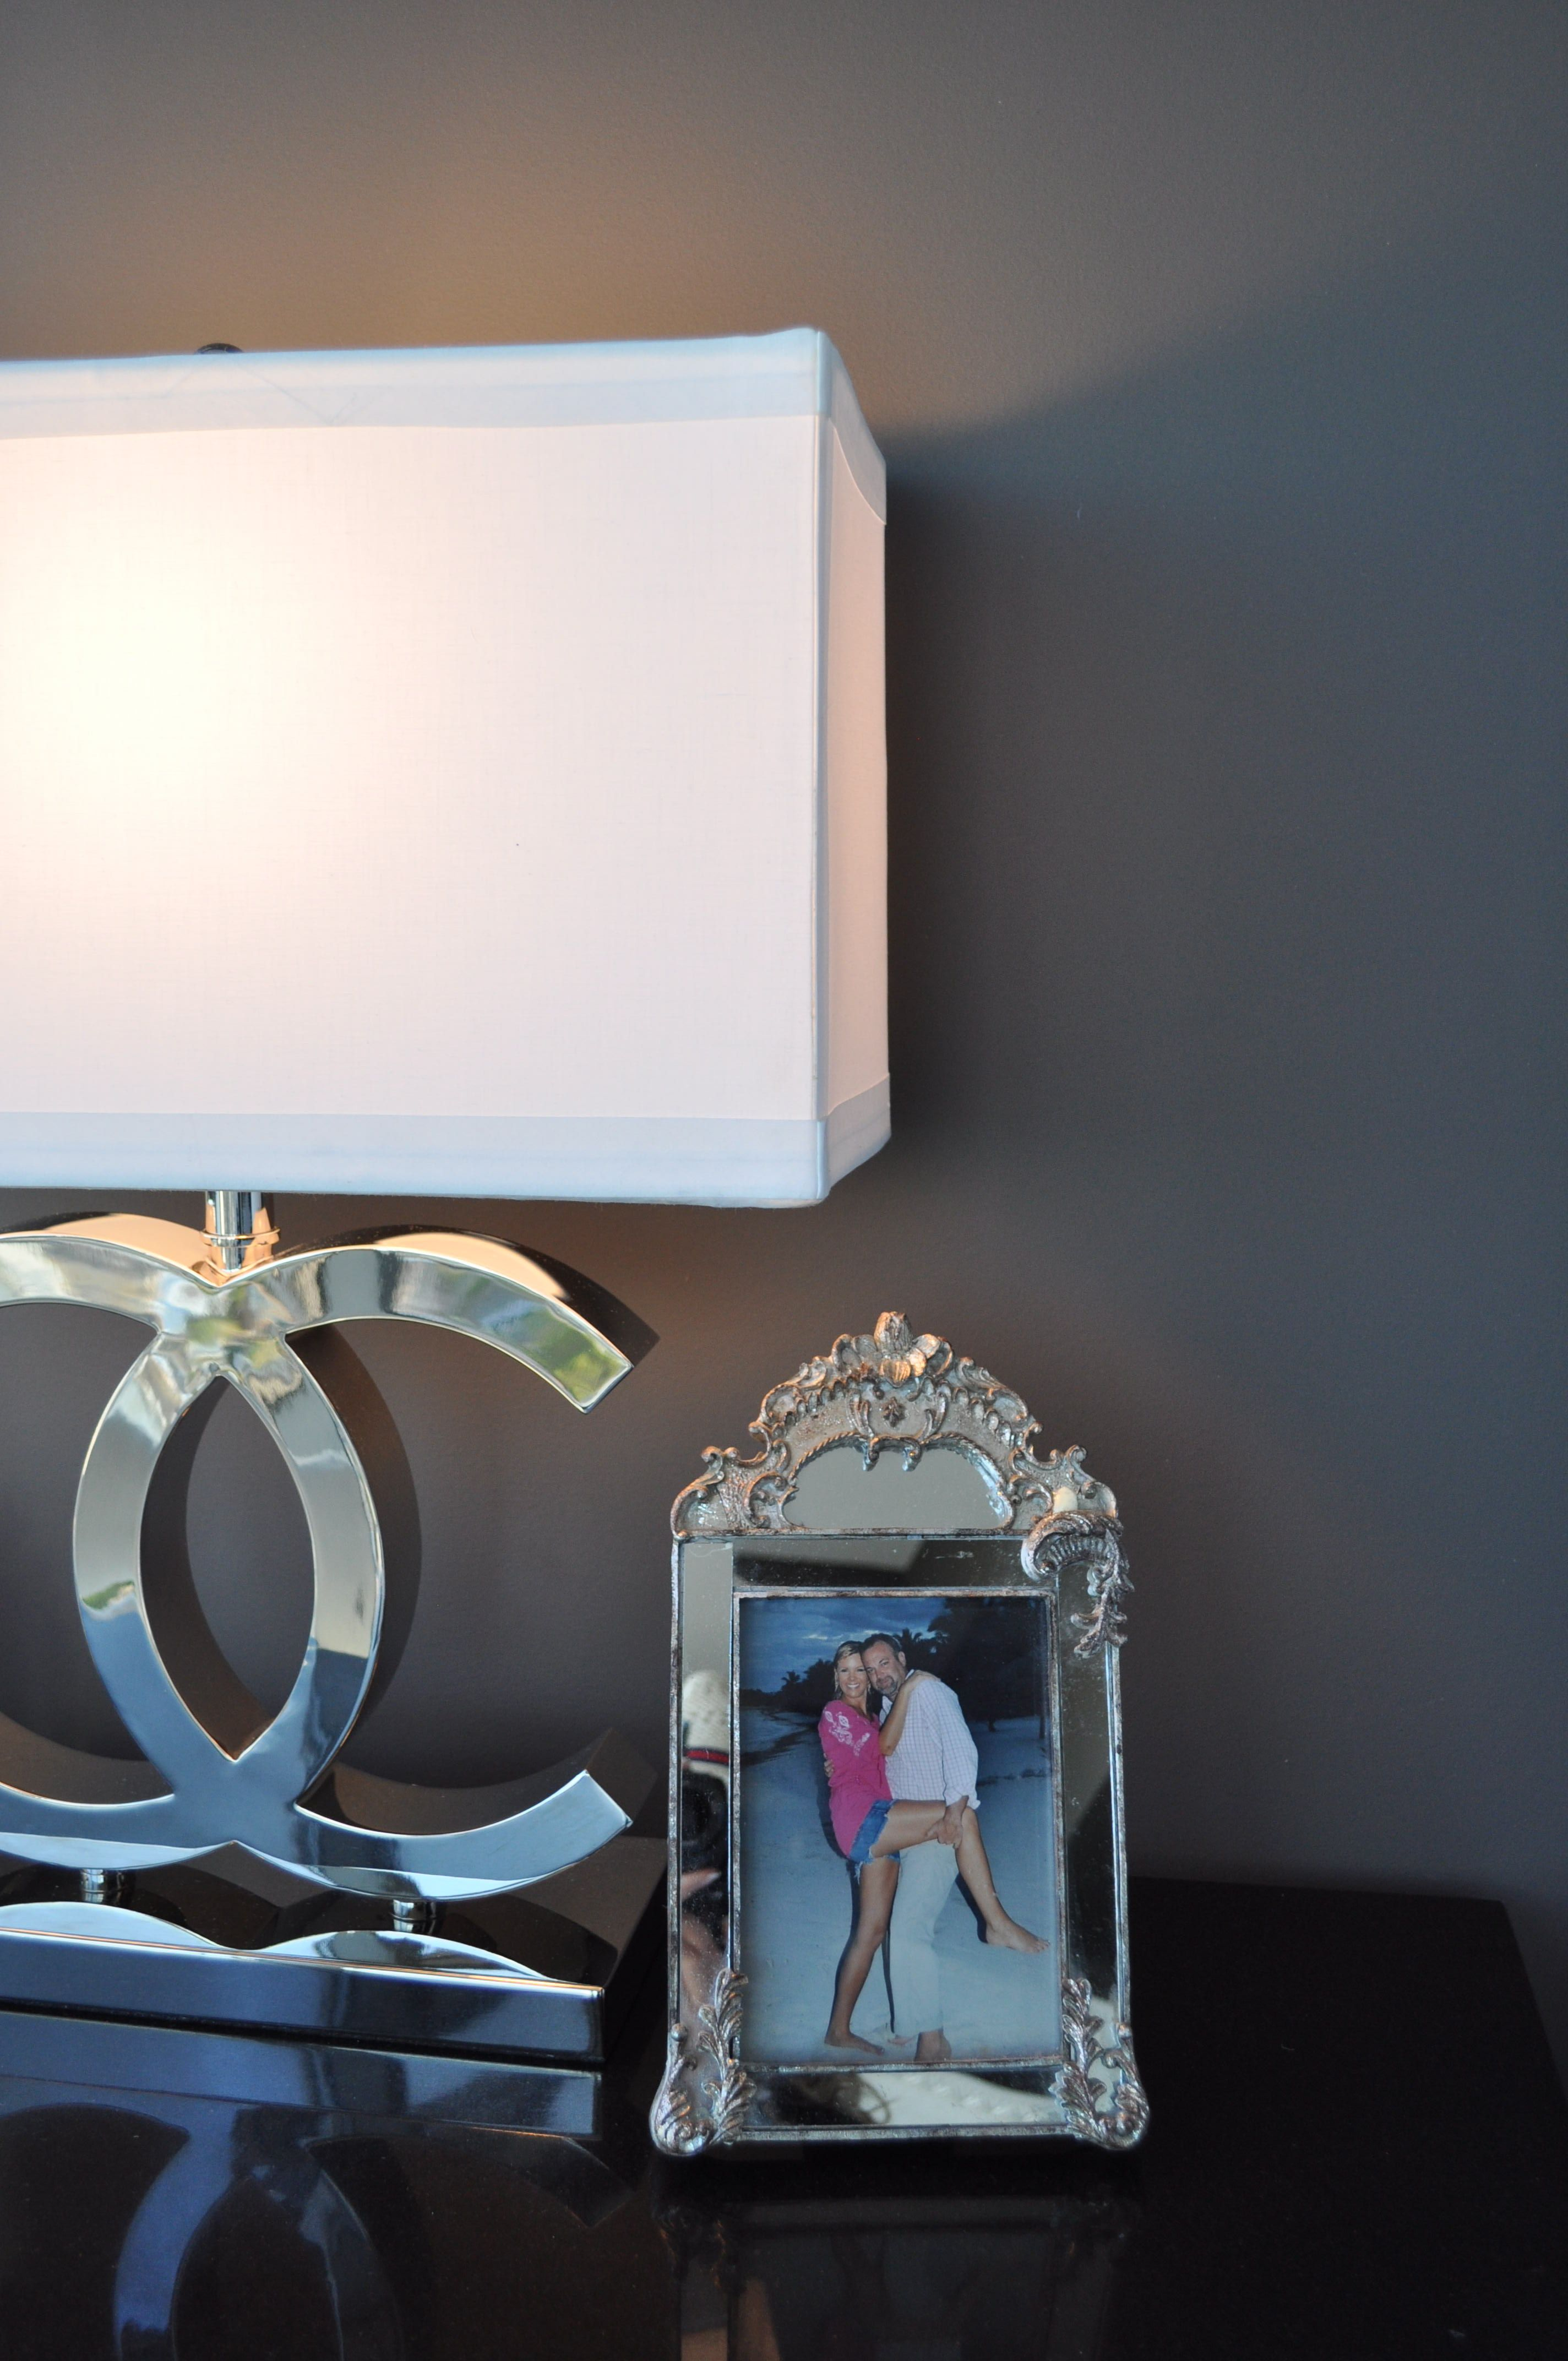 Attractive Chrome Chanel Lamps With Boxed White Shade